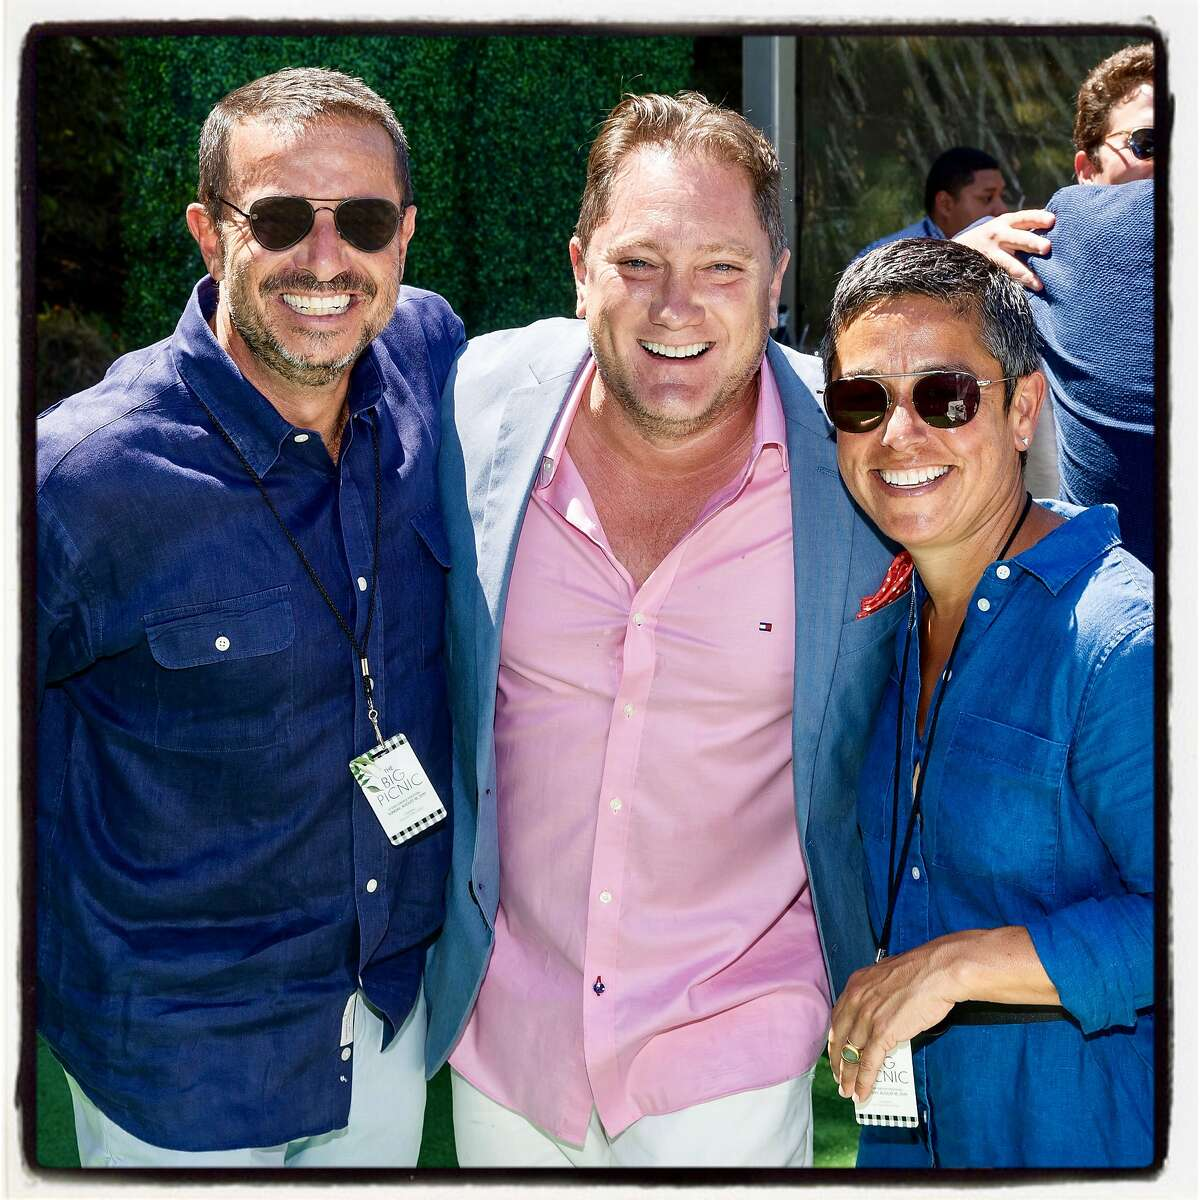 SAN FRANCISCO, CA - August 18 - Phil Ginsburg, Liam Mayclem and Emiliy Ginsburg attend Stern Grove Festival's The Big Picnic 2019 starring The Isley Brothers on August 18th 2019 at Sigmund Stern Grove in San Francisco, CA (Photo - Devlin Shand for Drew Altizer Photography)